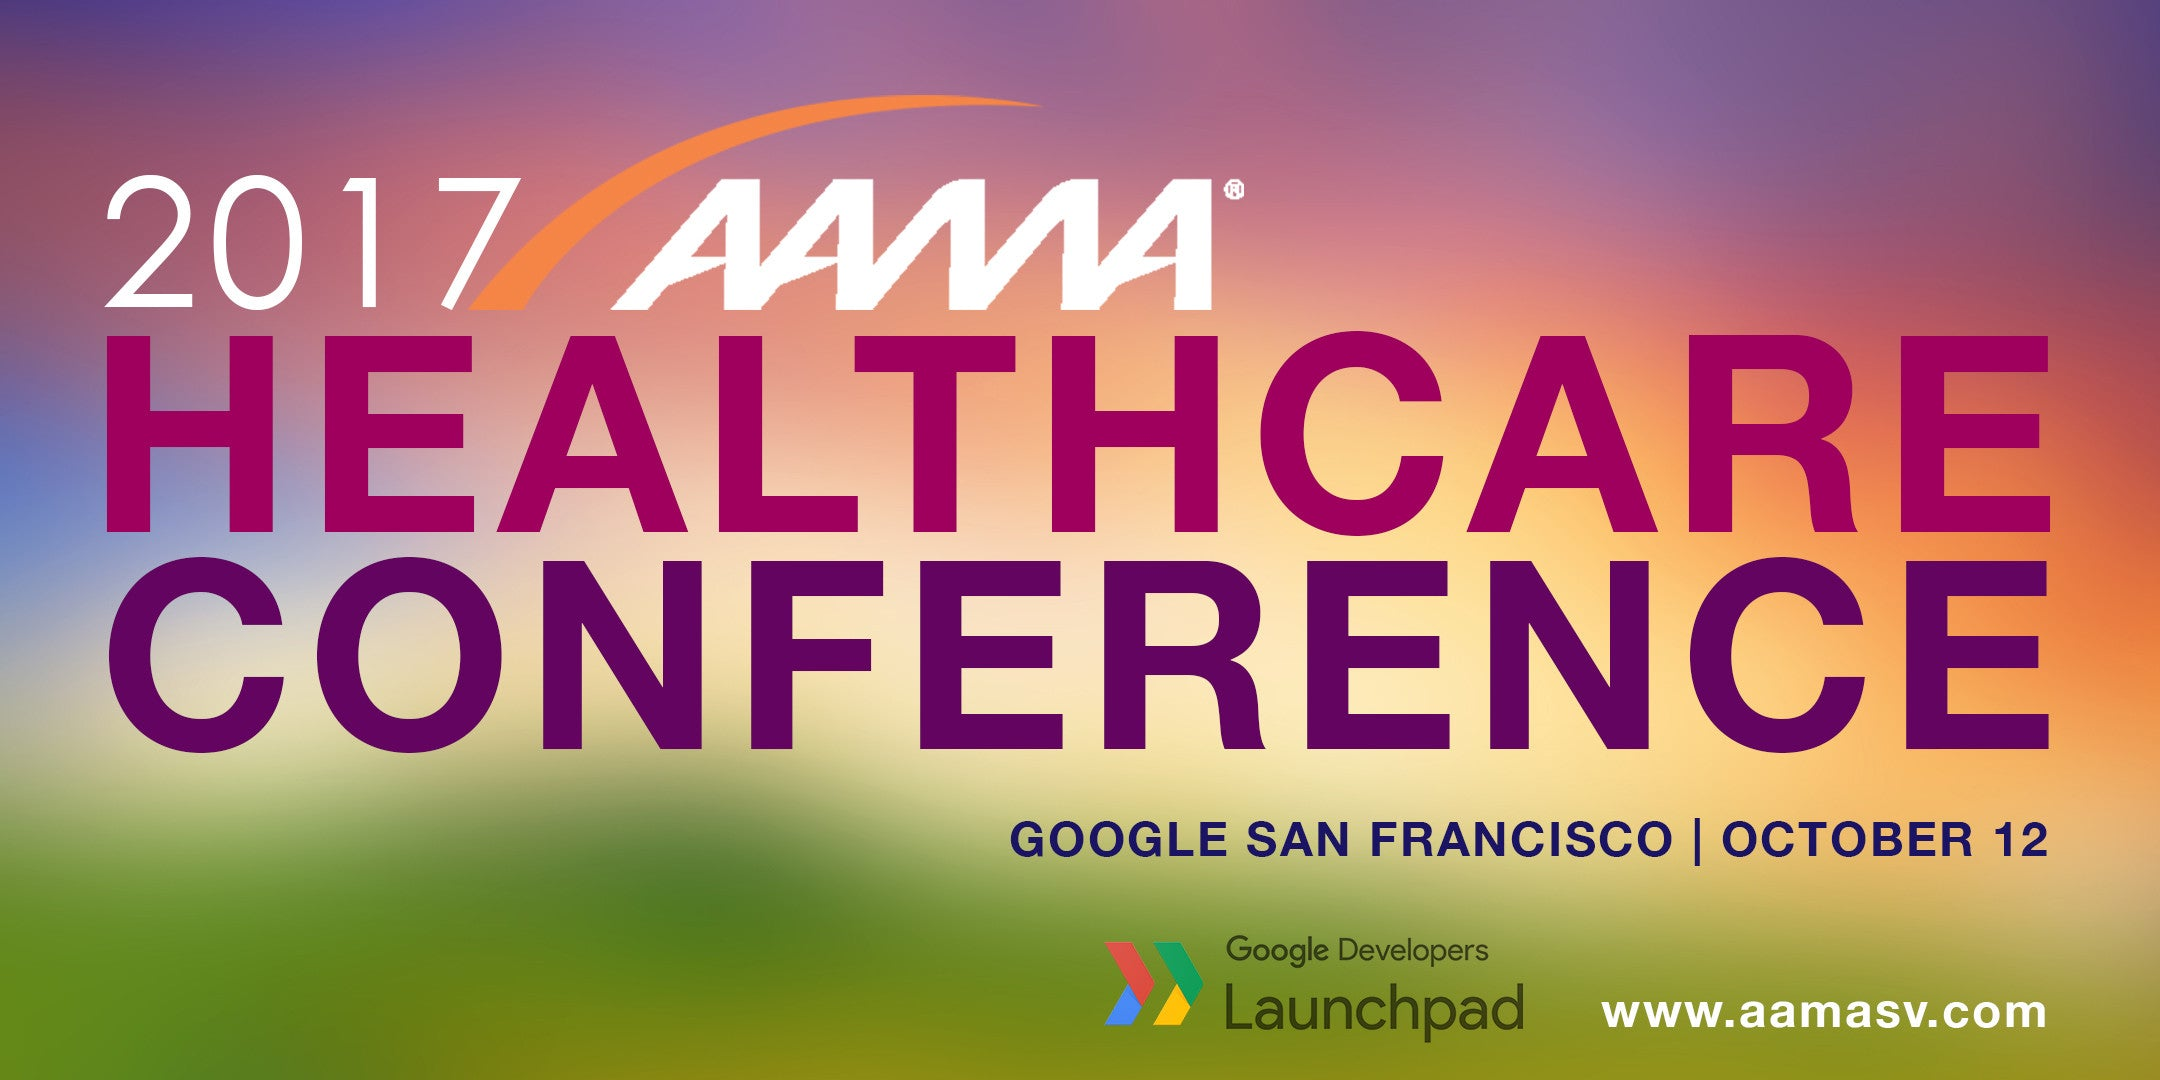 2017 AAMA Healthcare Conference